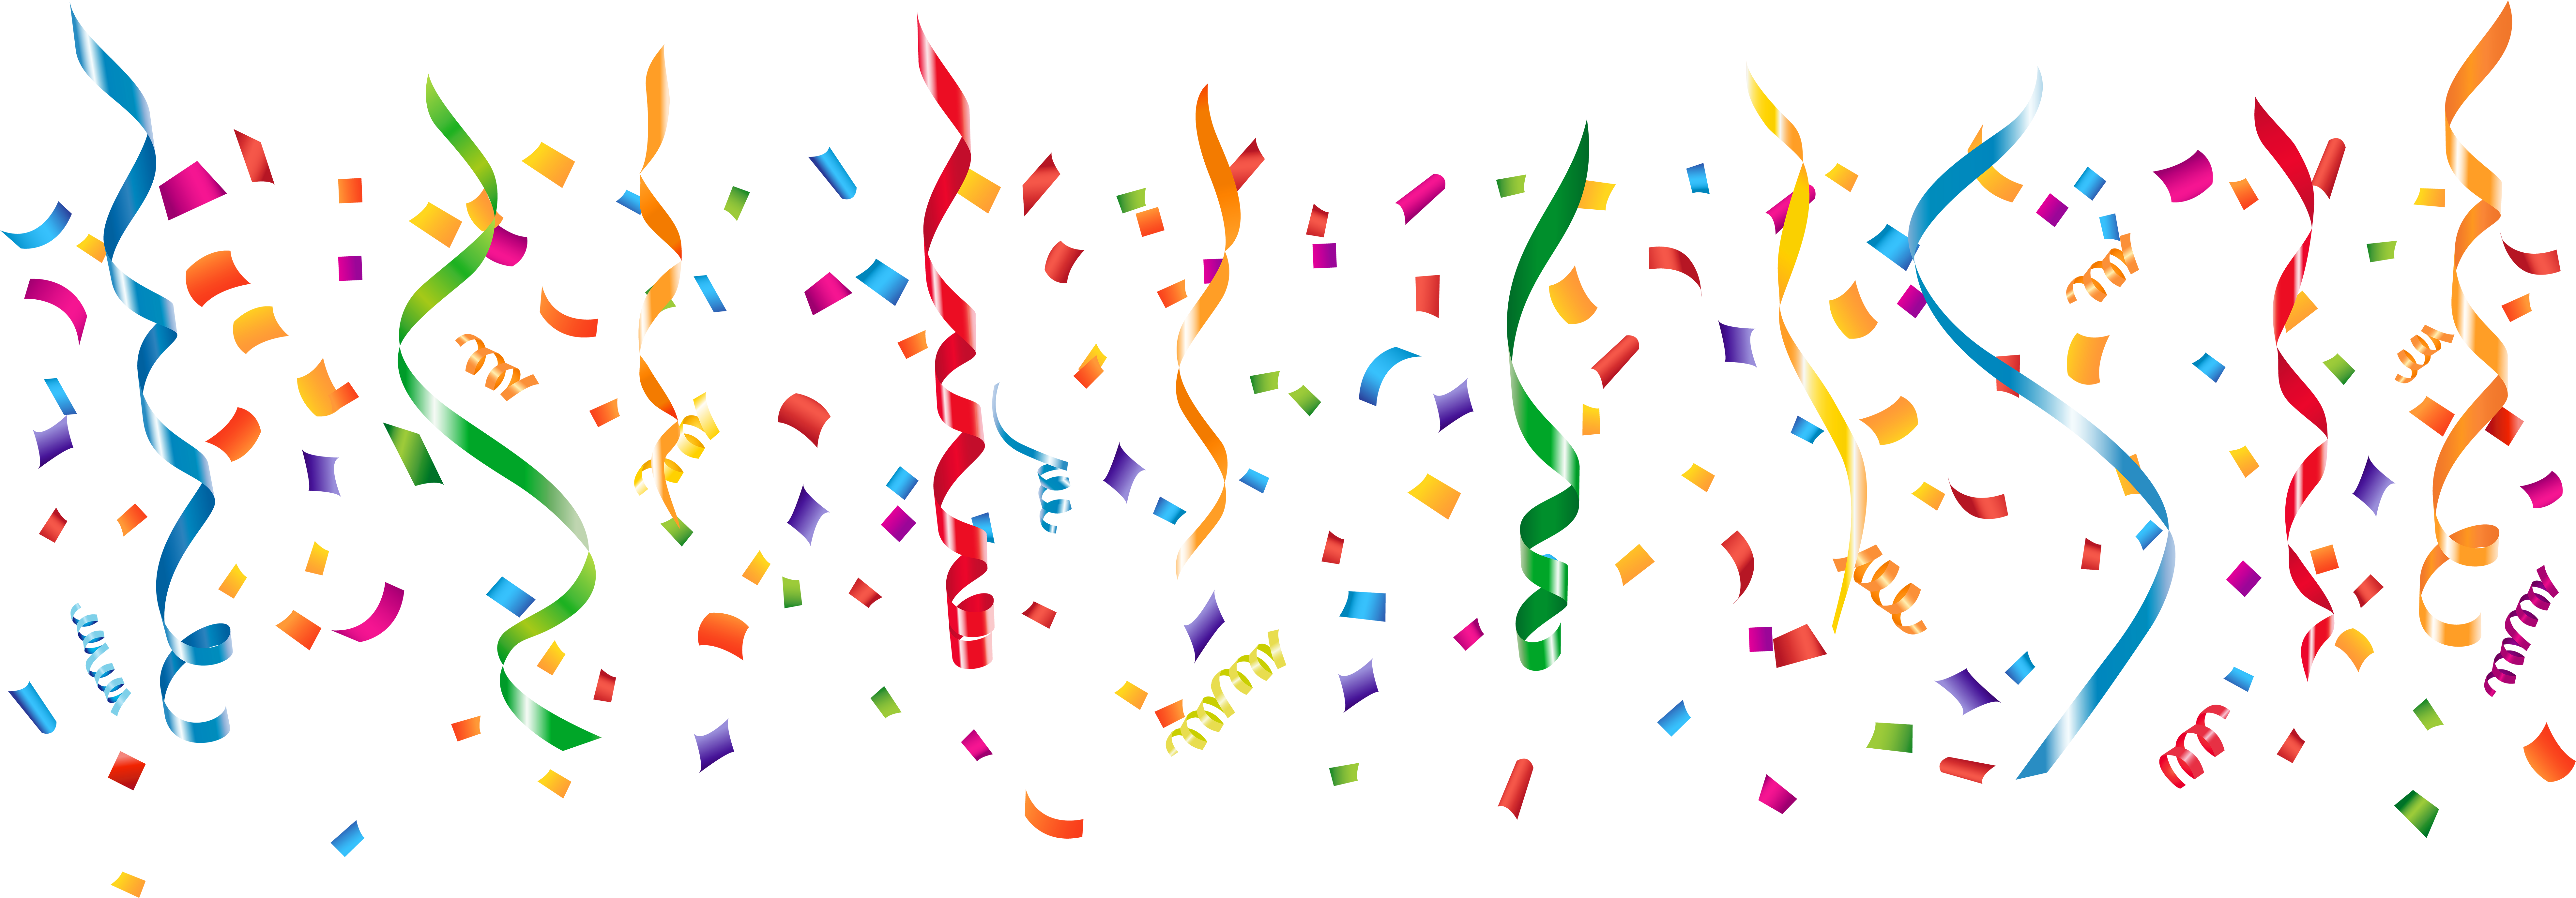 Party streamers png. Download decoration image with